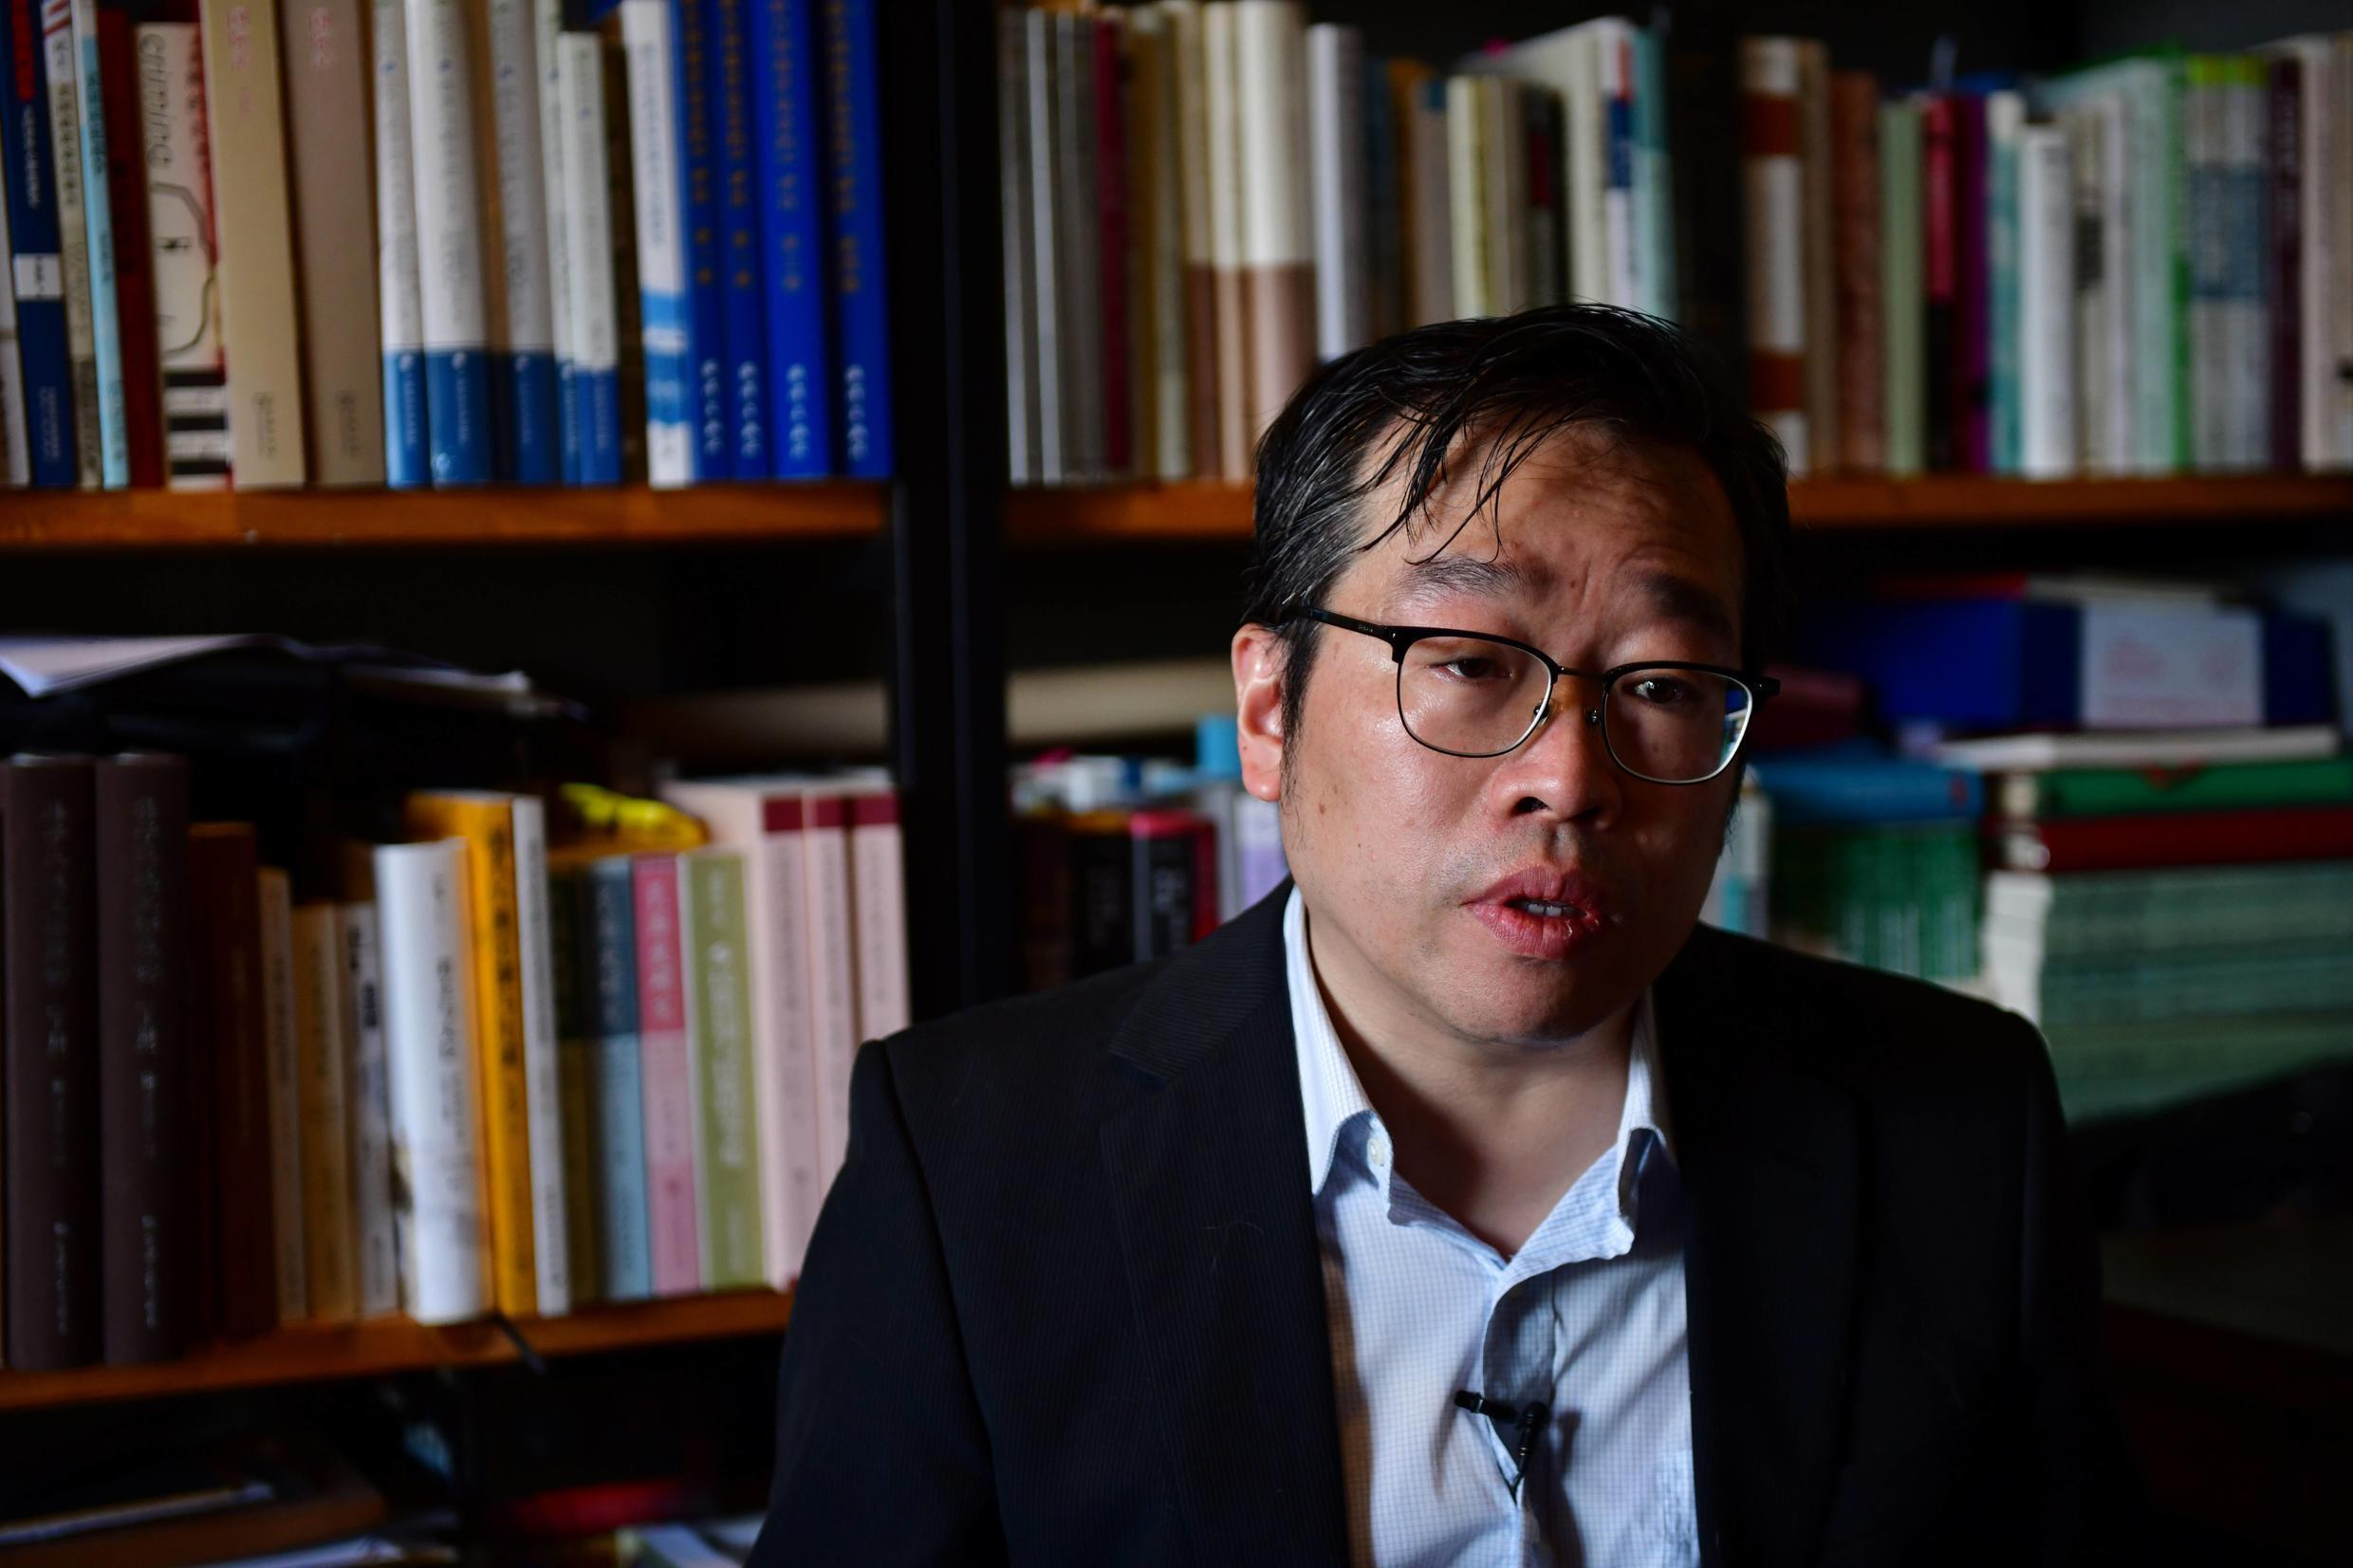 Wu Qiang was fired from the prestigious Tsinghua university shortly after he conducted fieldwork at the Occupy Central protests in Hong Kong